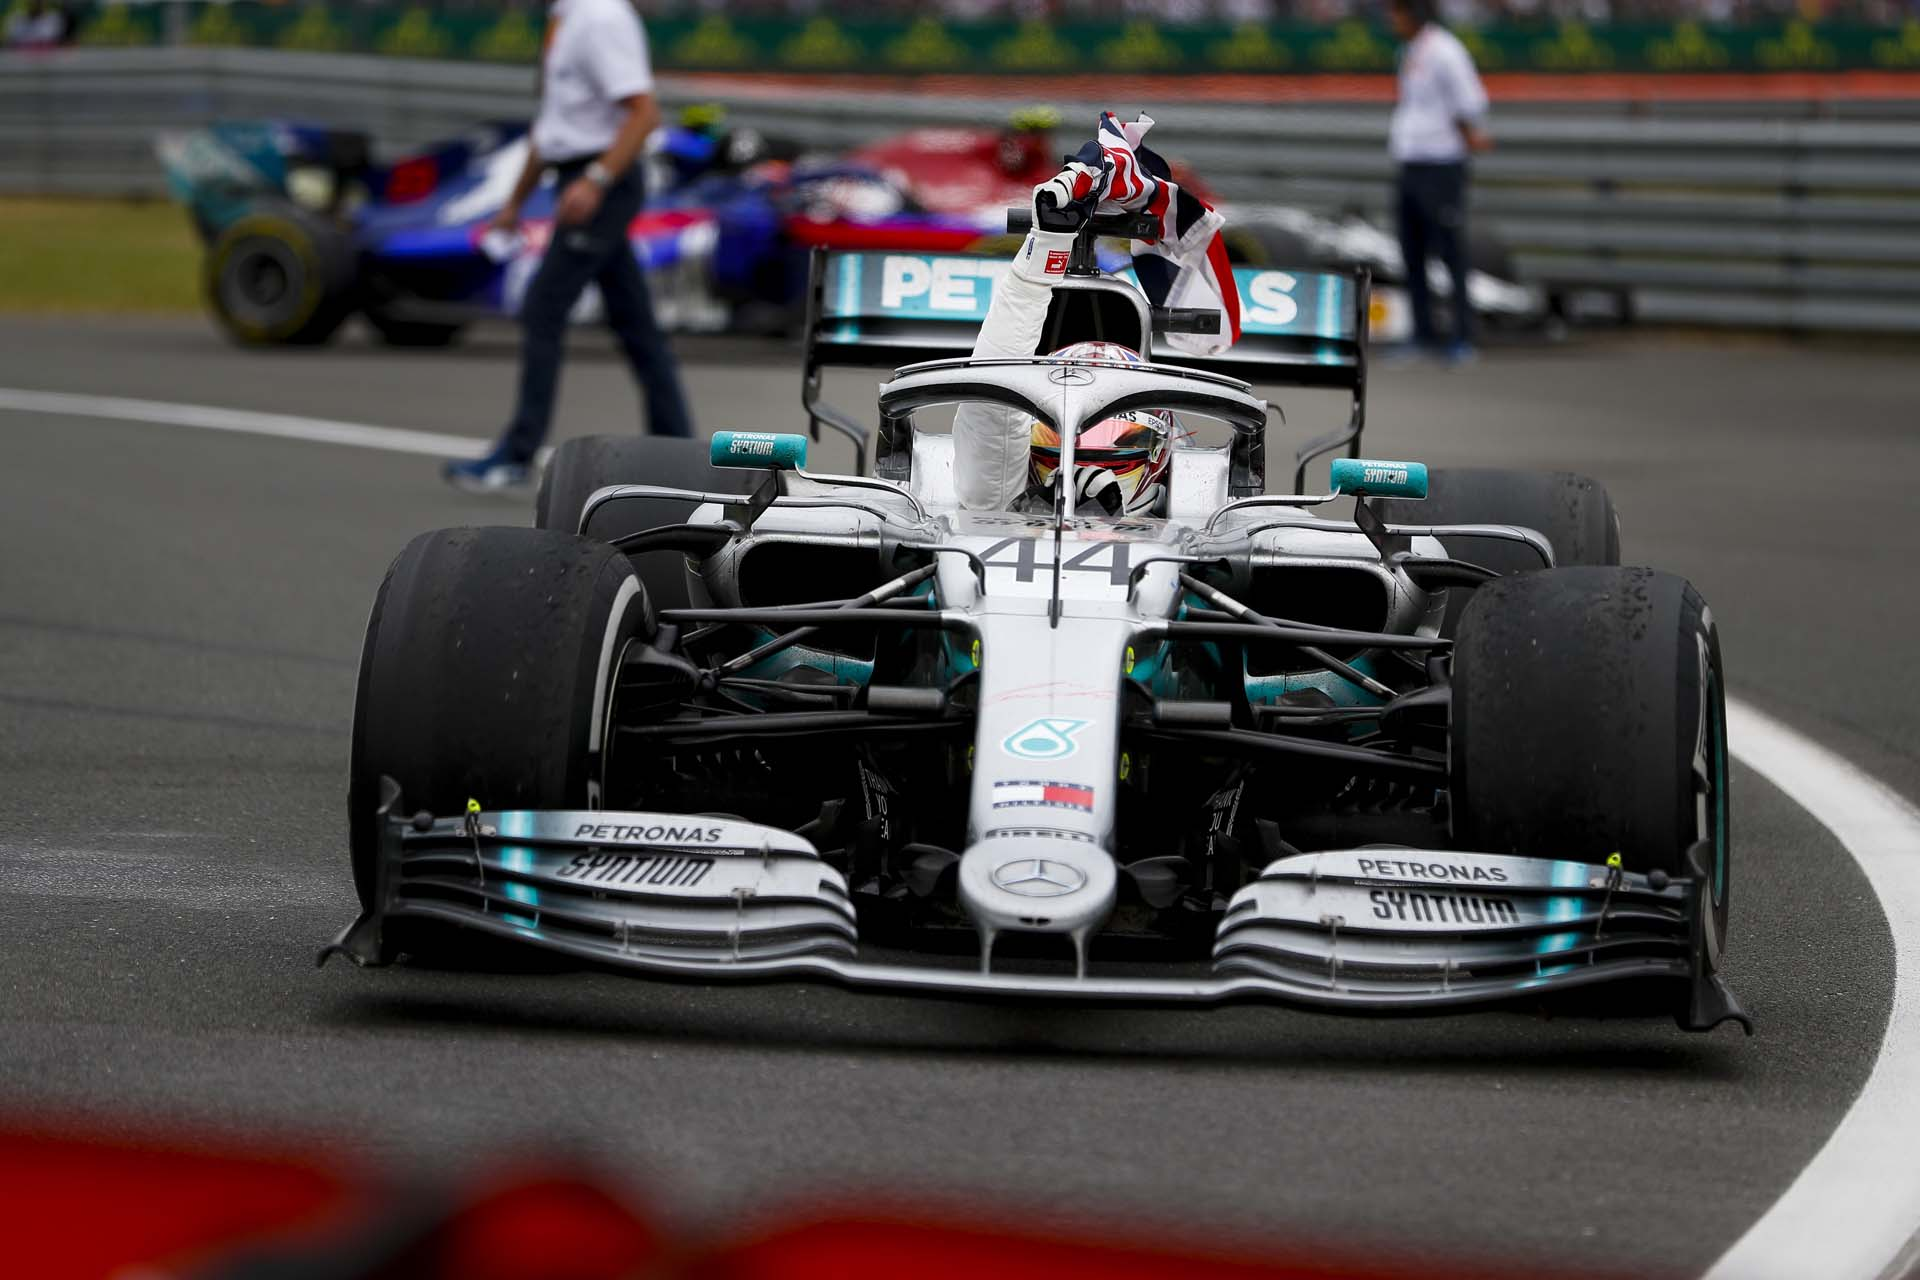 SILVERSTONE, UNITED KINGDOM - JULY 14: Race winner Lewis Hamilton, Mercedes AMG F1 W10 with a flag during the British GP at Silverstone on July 14, 2019 in Silverstone, United Kingdom. (Photo by Glenn Dunbar / LAT Images)